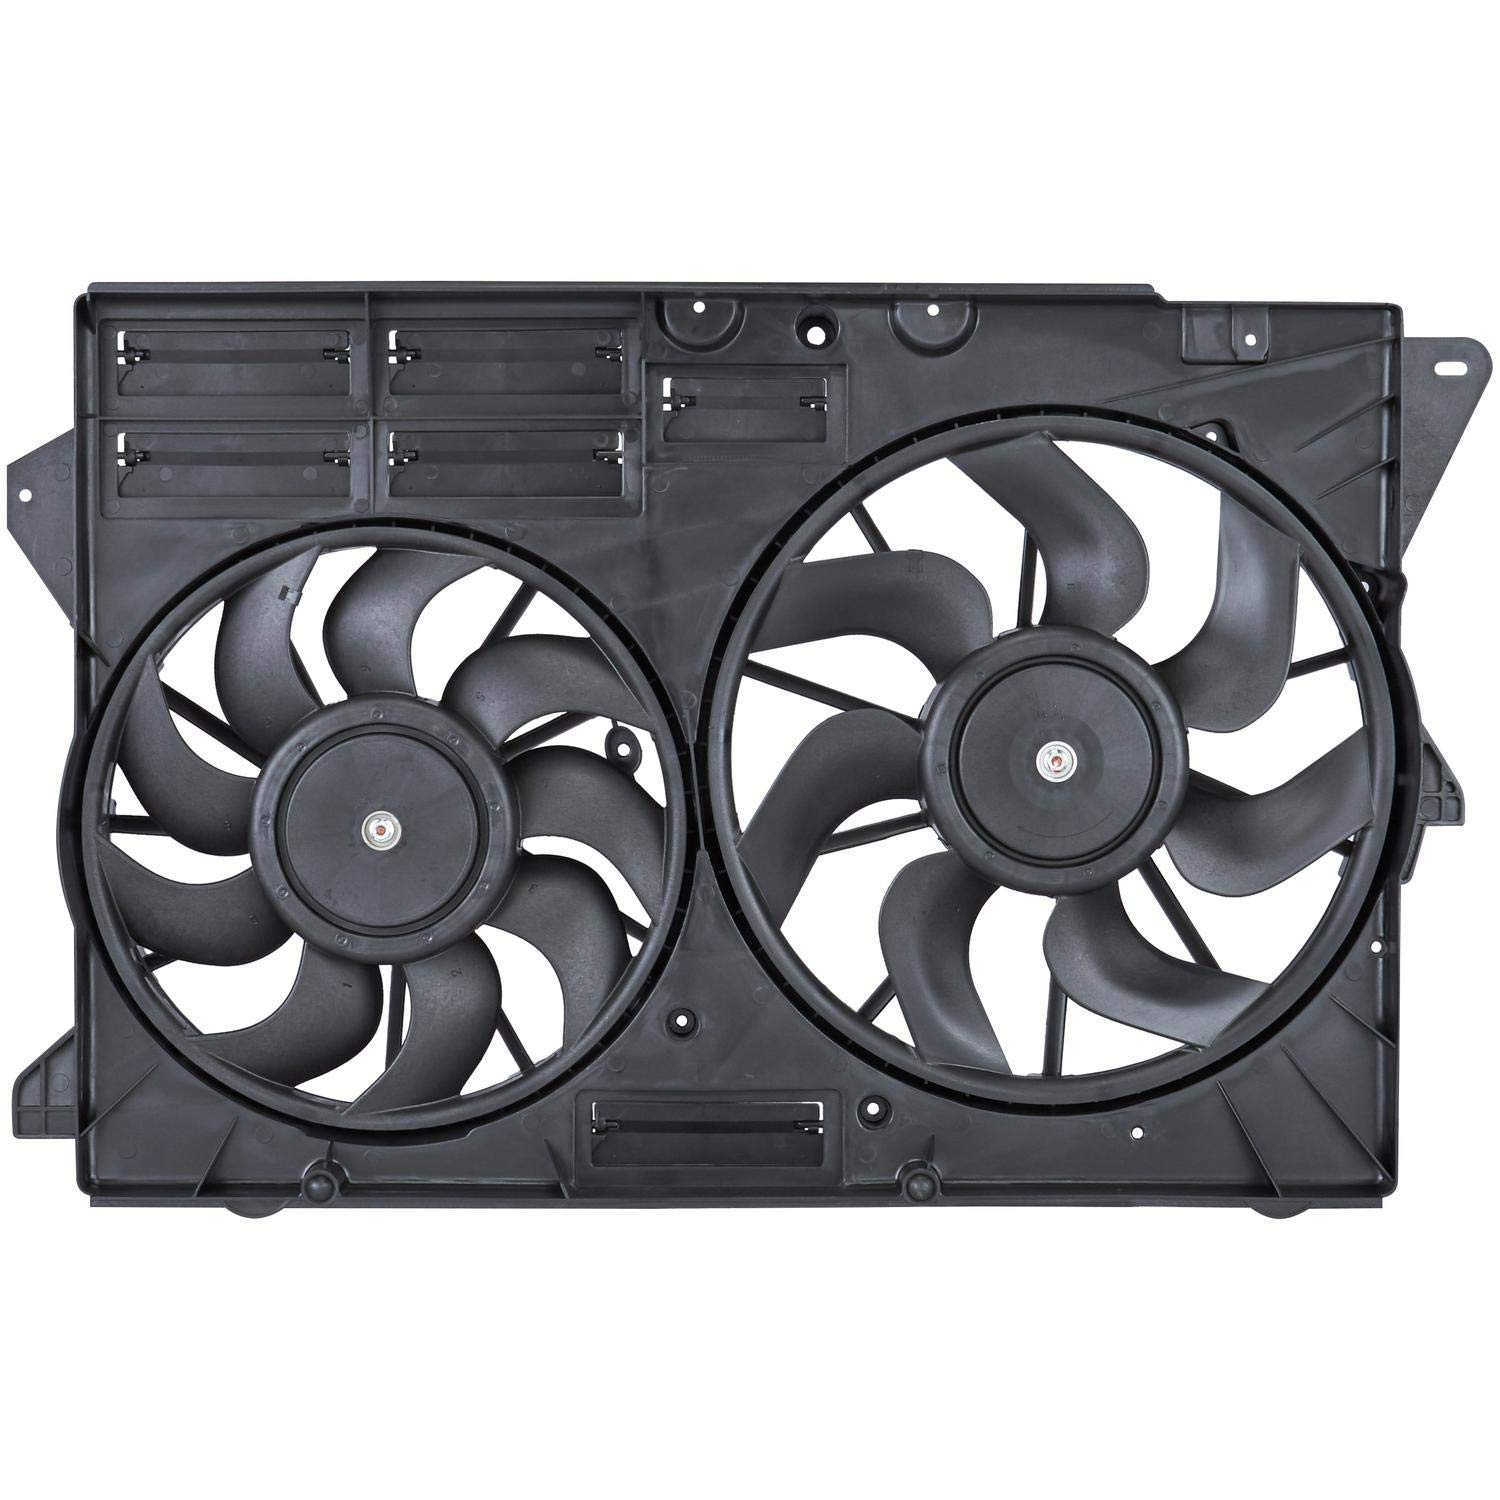 Spectra Premium CF15111 Dual Radiator And Condenser Fan Assembly